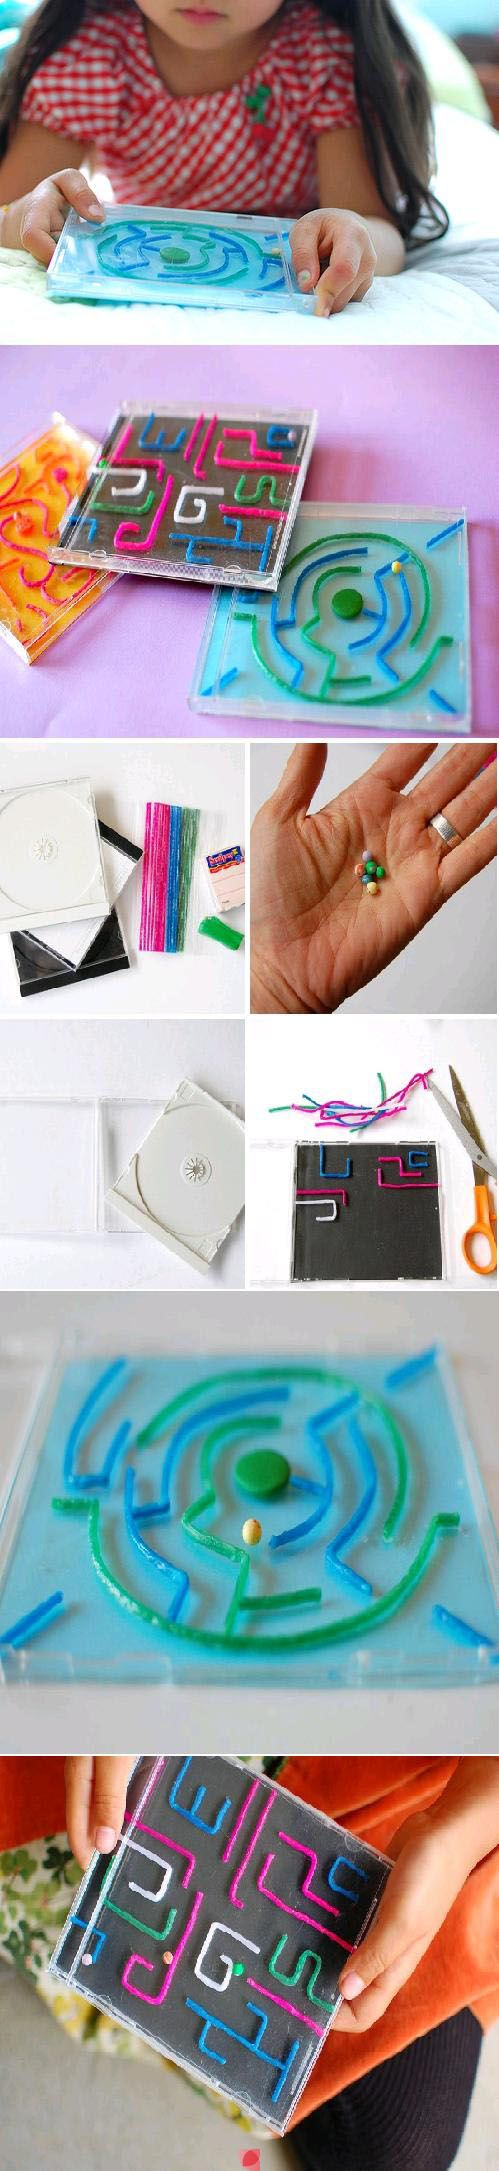 string and a cd case to make a cool maze